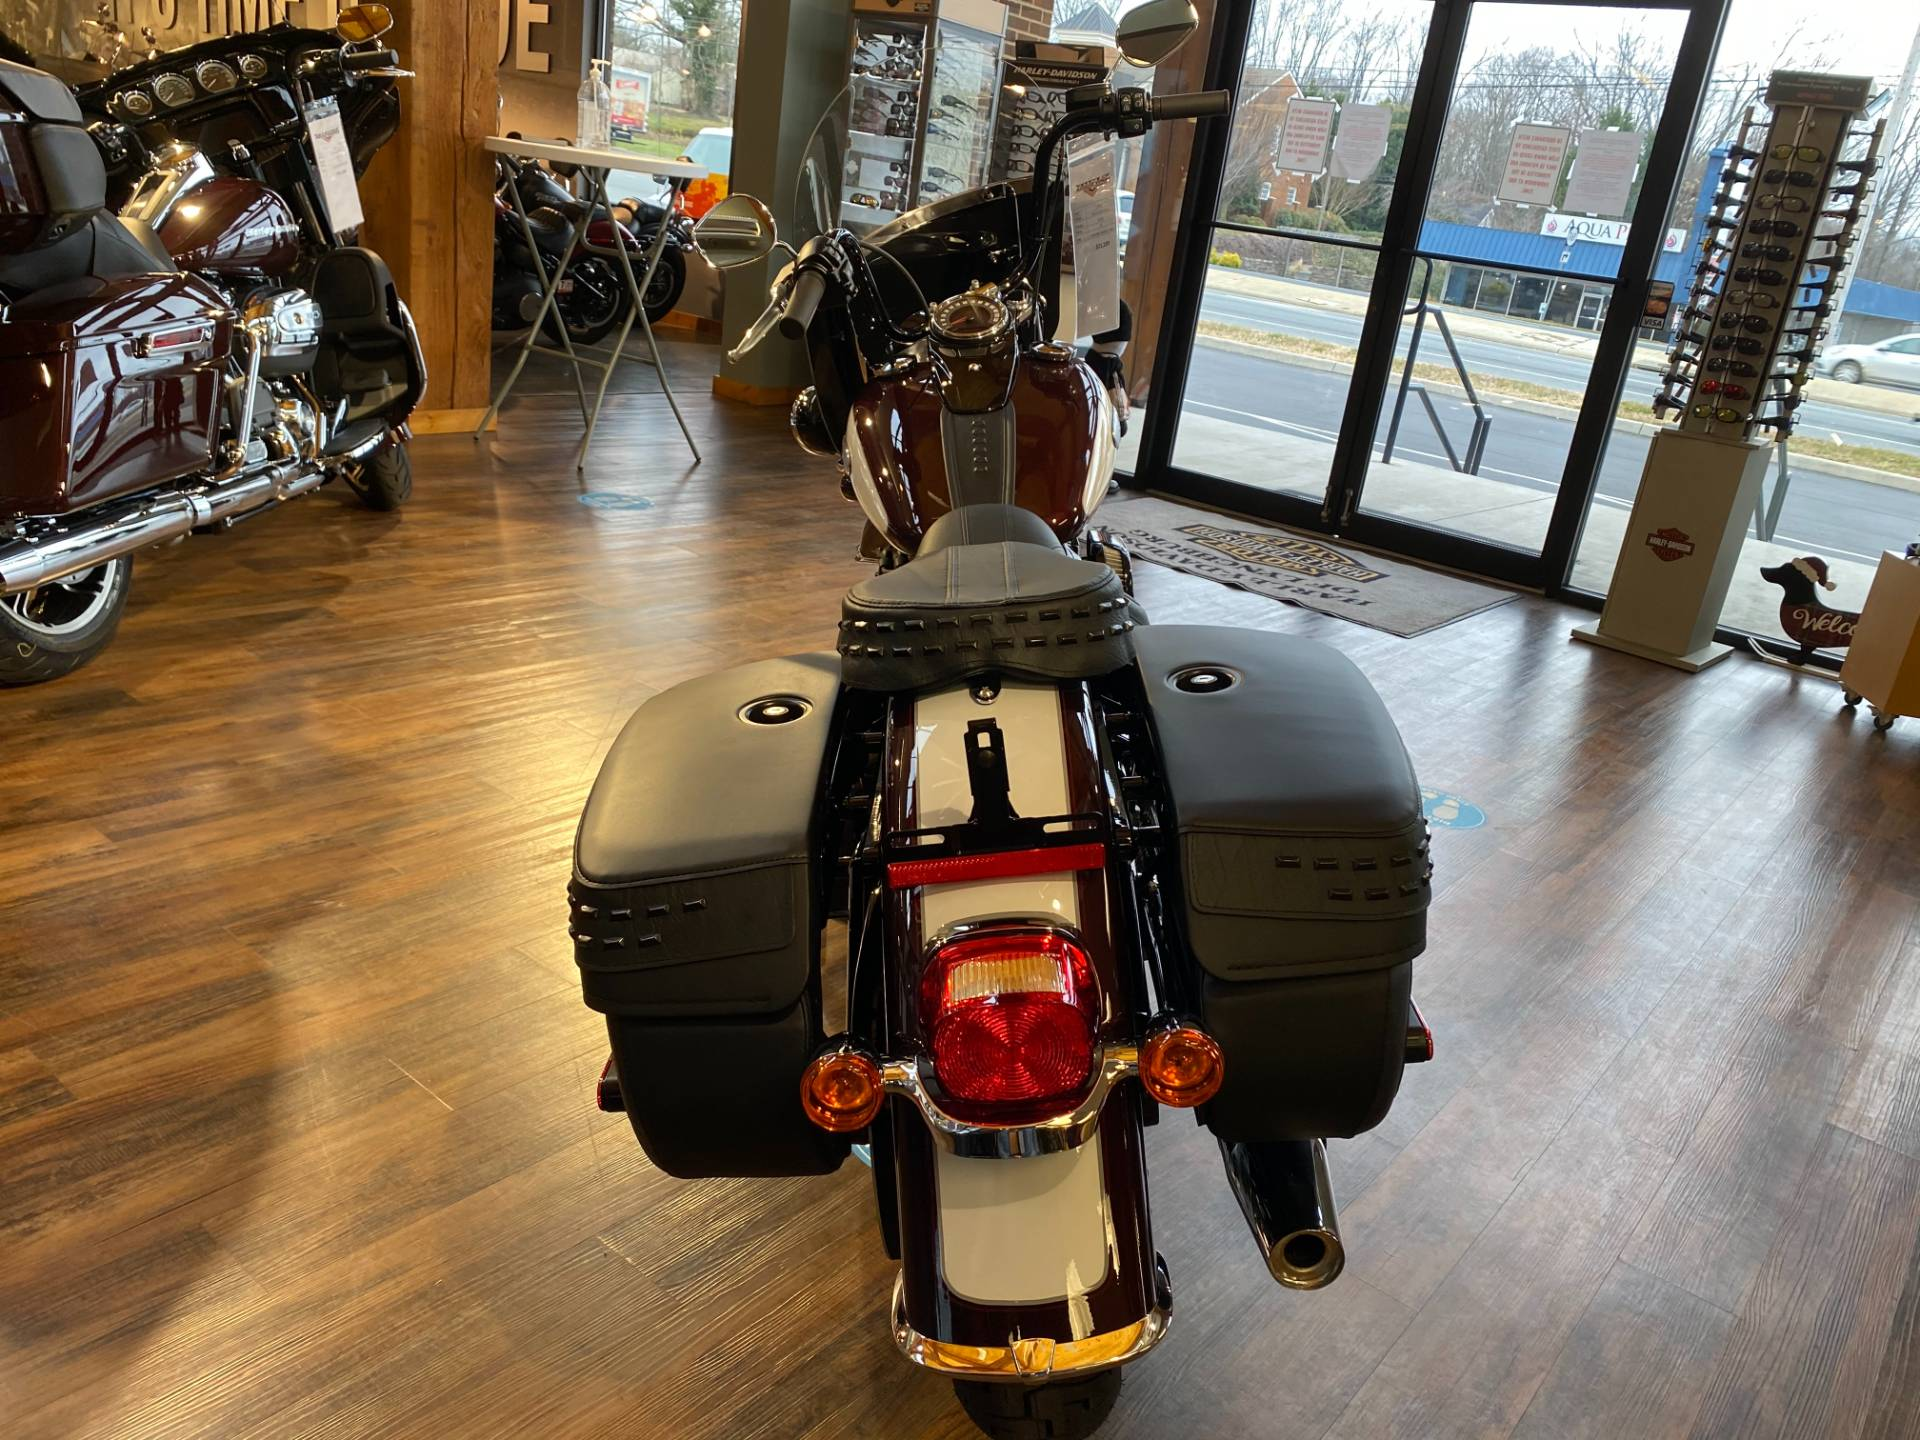 2021 Harley-Davidson FLHCS in Lynchburg, Virginia - Photo 6